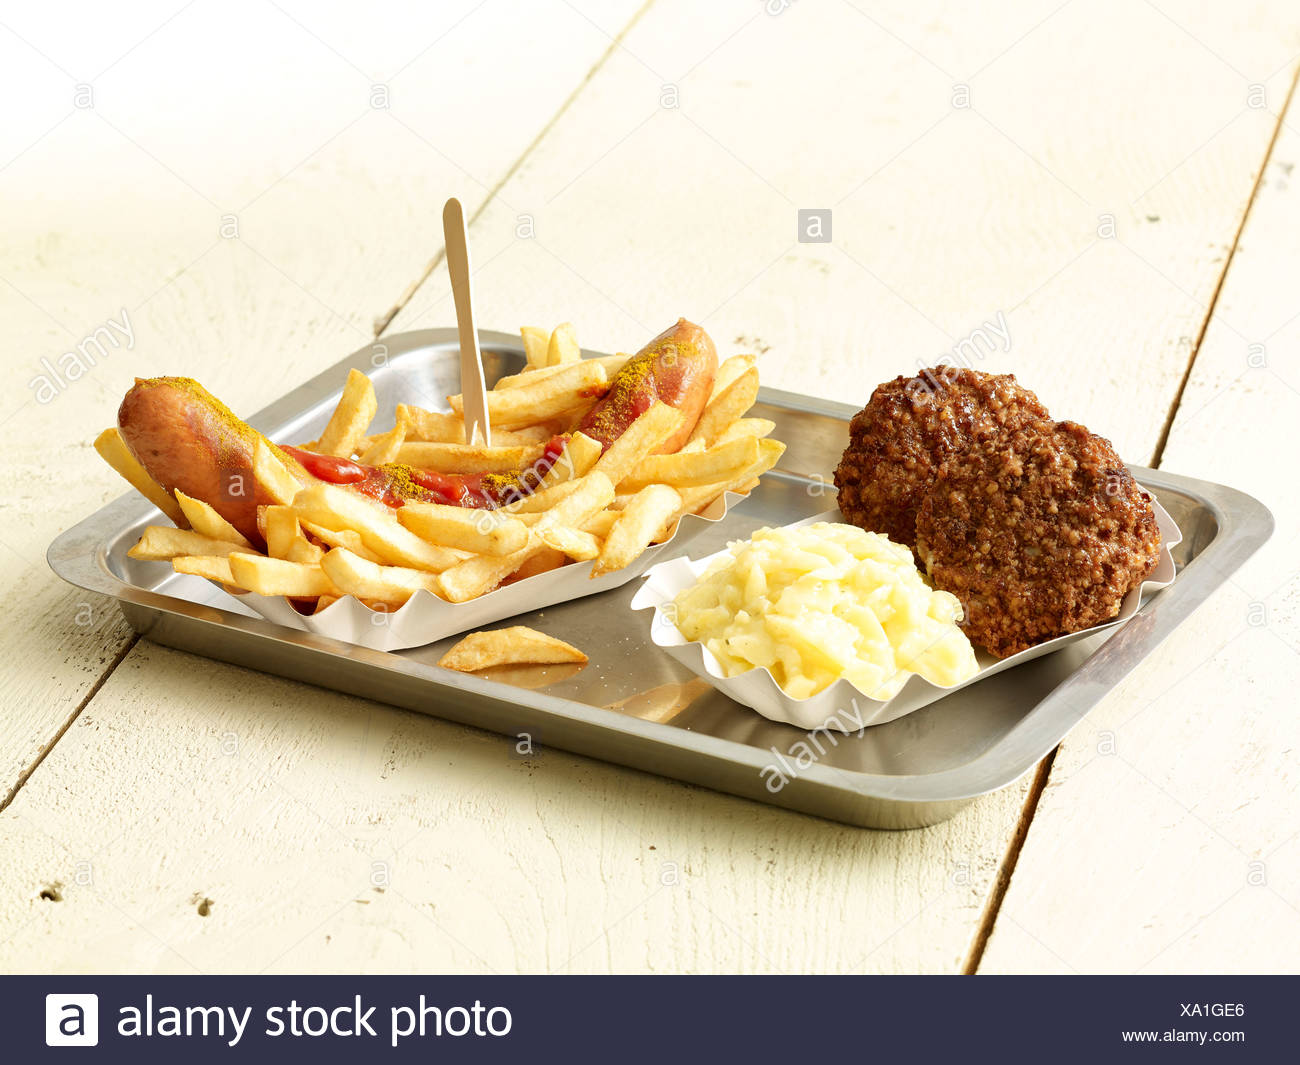 Curry sausage with French fries, two meatballs and mashed potatoes on metal tray Stock Photo